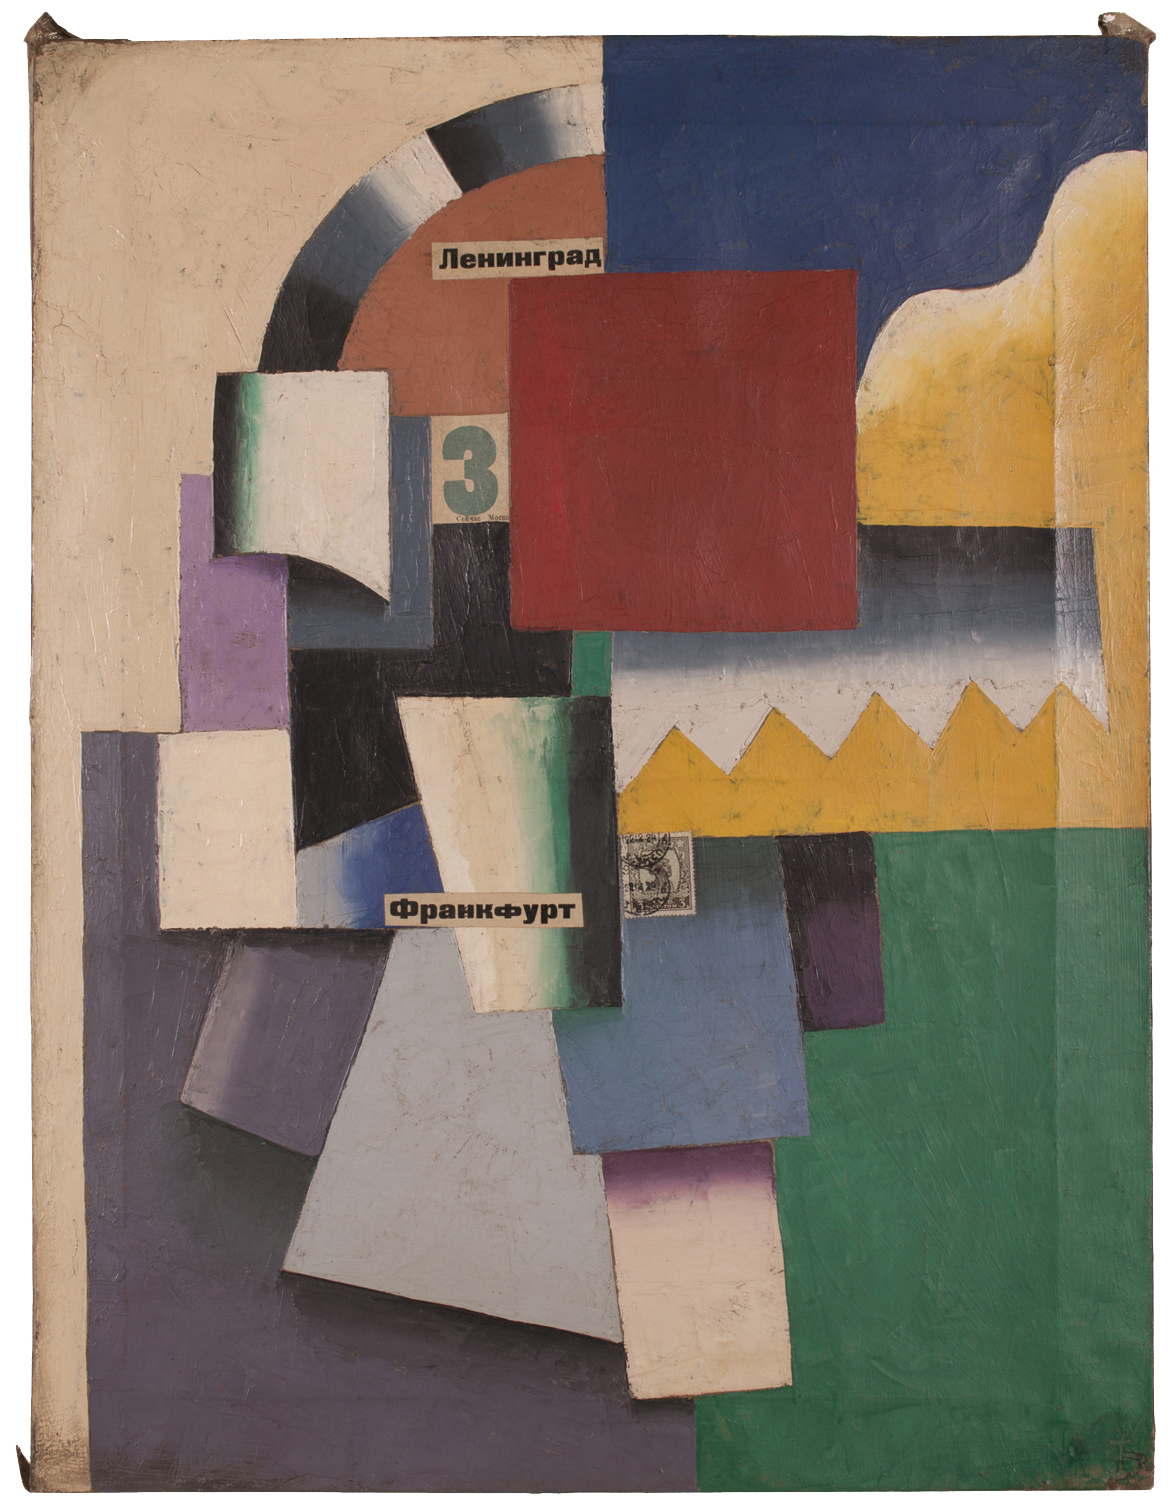 """Unattributed. In the style of Kasimir Malevich.Signed """"b"""" (archaic Cyrillic """"yat"""" symbol)on lower right front corner. In the style of Kasimir Malevich.Collage elements reference """"Leningrad"""" and """"Frankfurt"""".   Mixed media on canvas. 57.x 44 cm."""